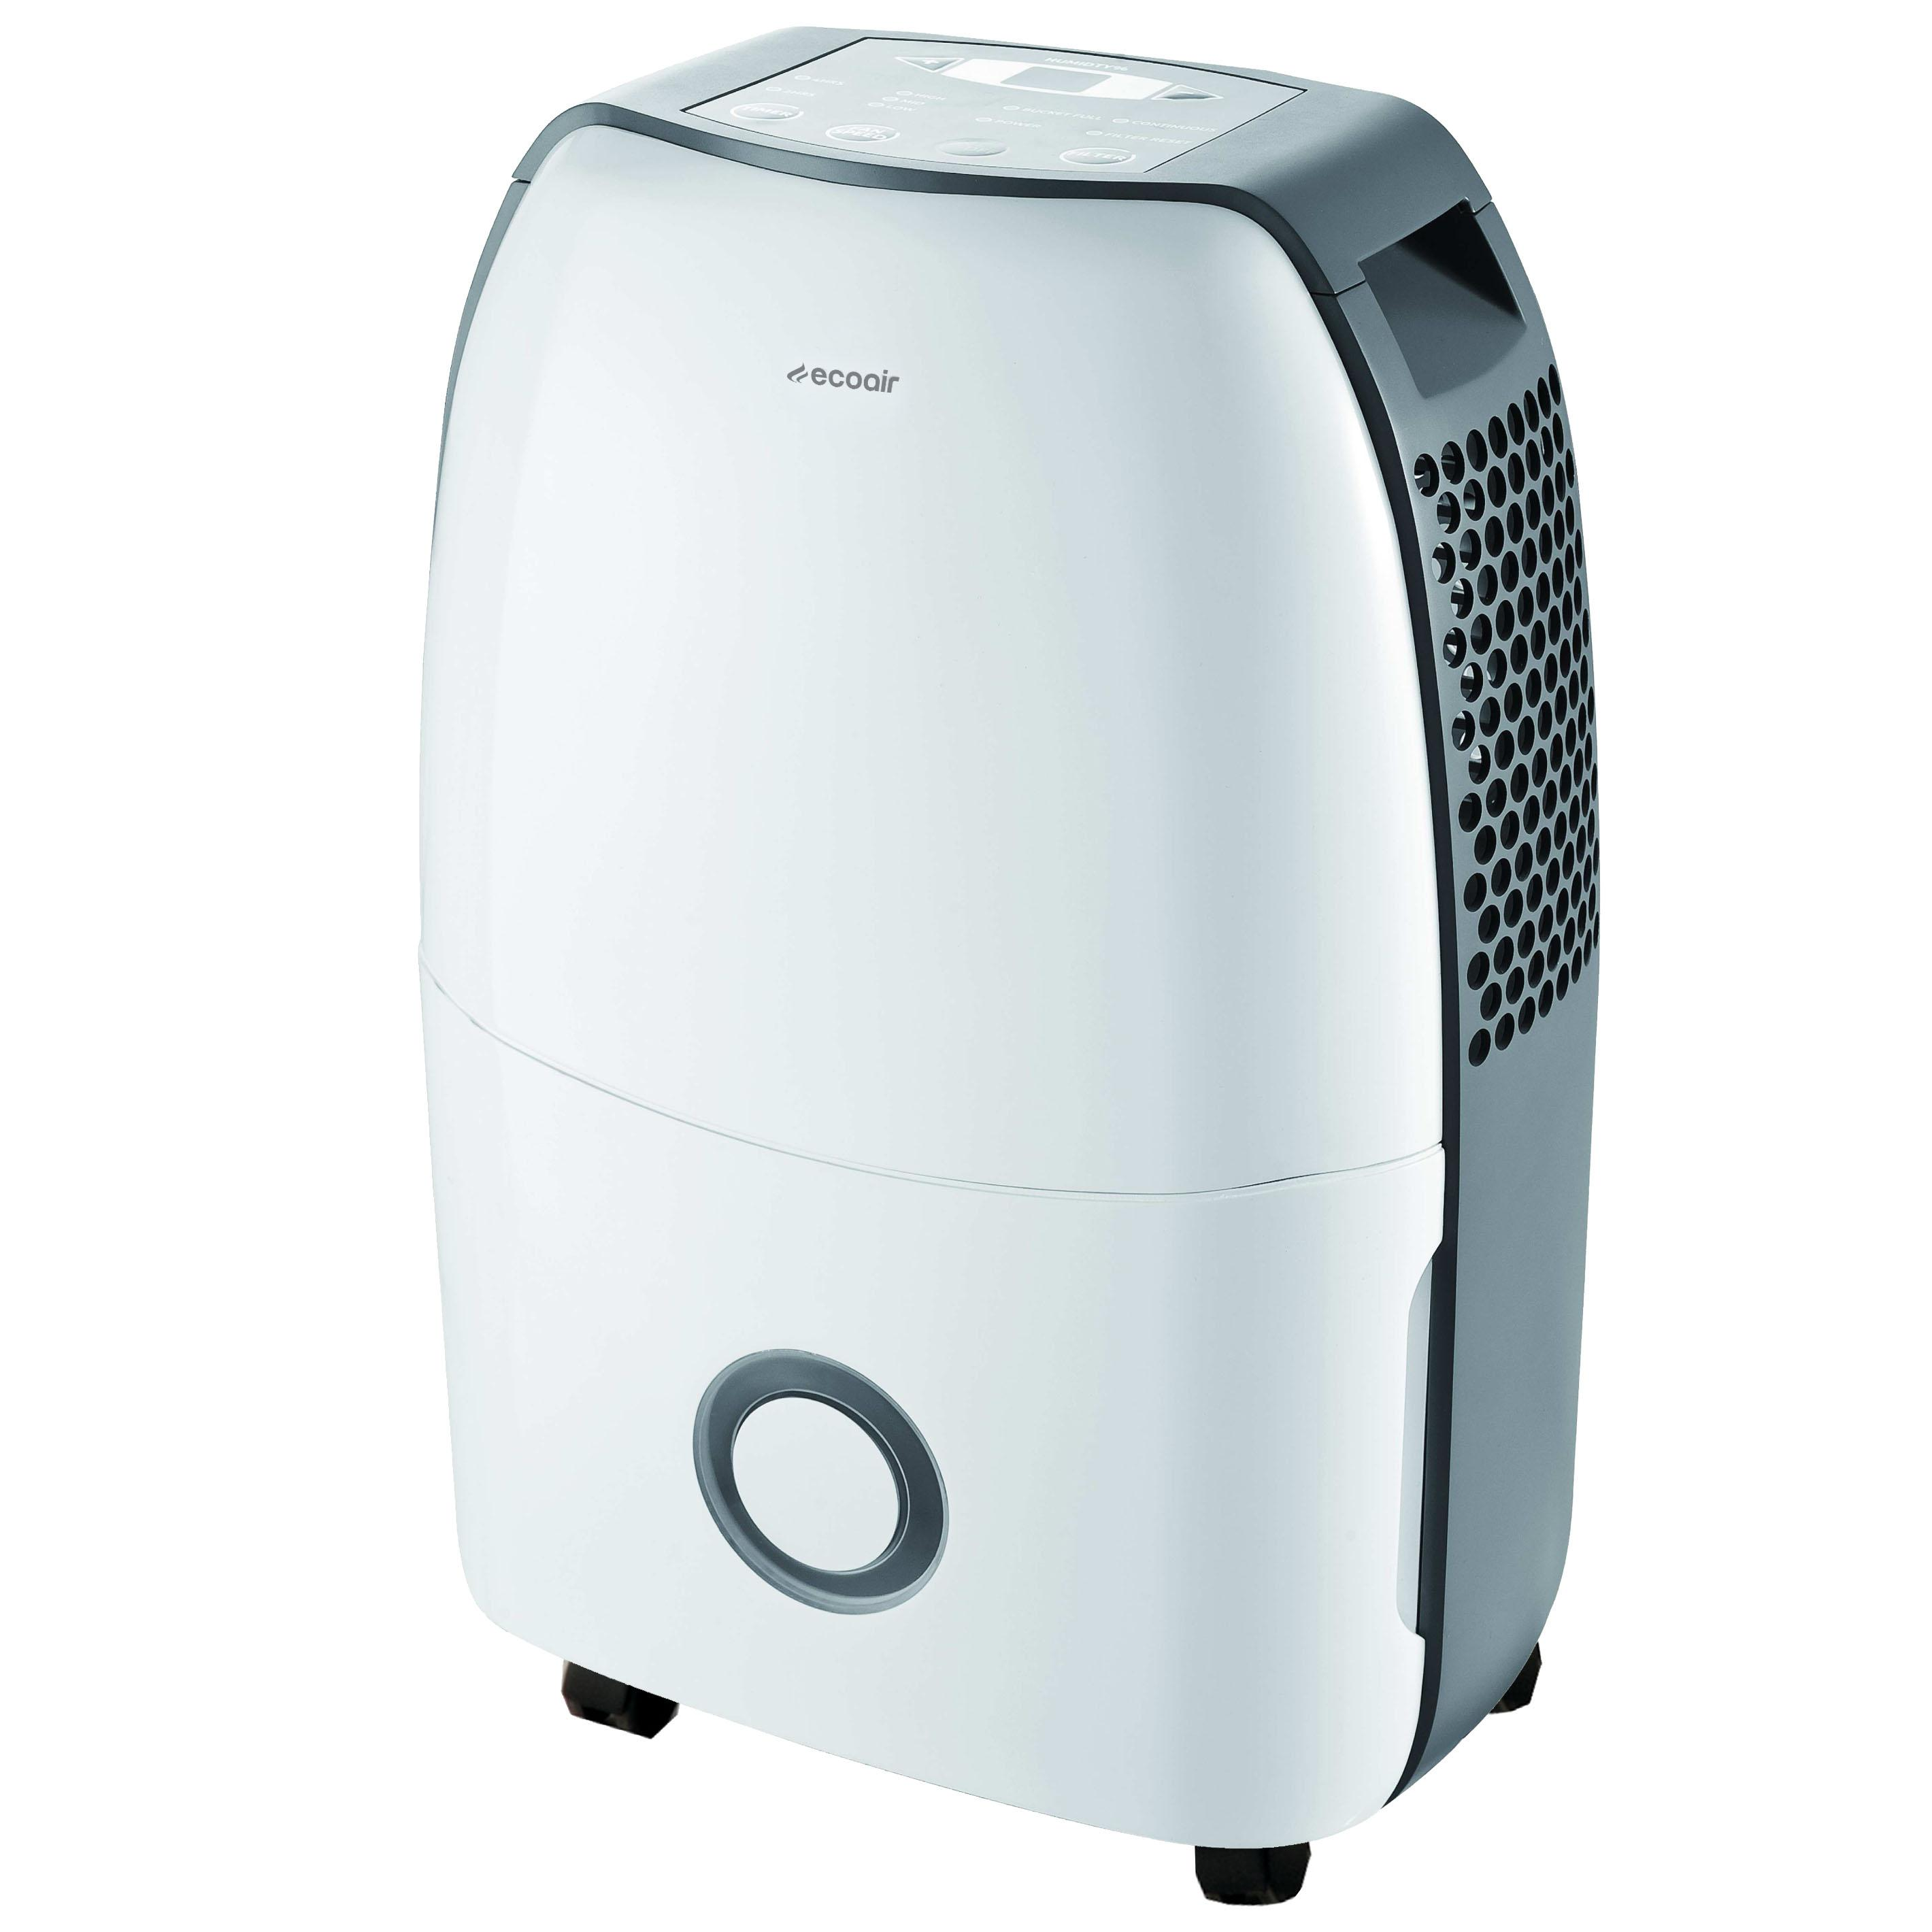 DC18 Compact Portable Dehumidifier 18 L: Amazon.co.uk: Kitchen & Home #506D7B